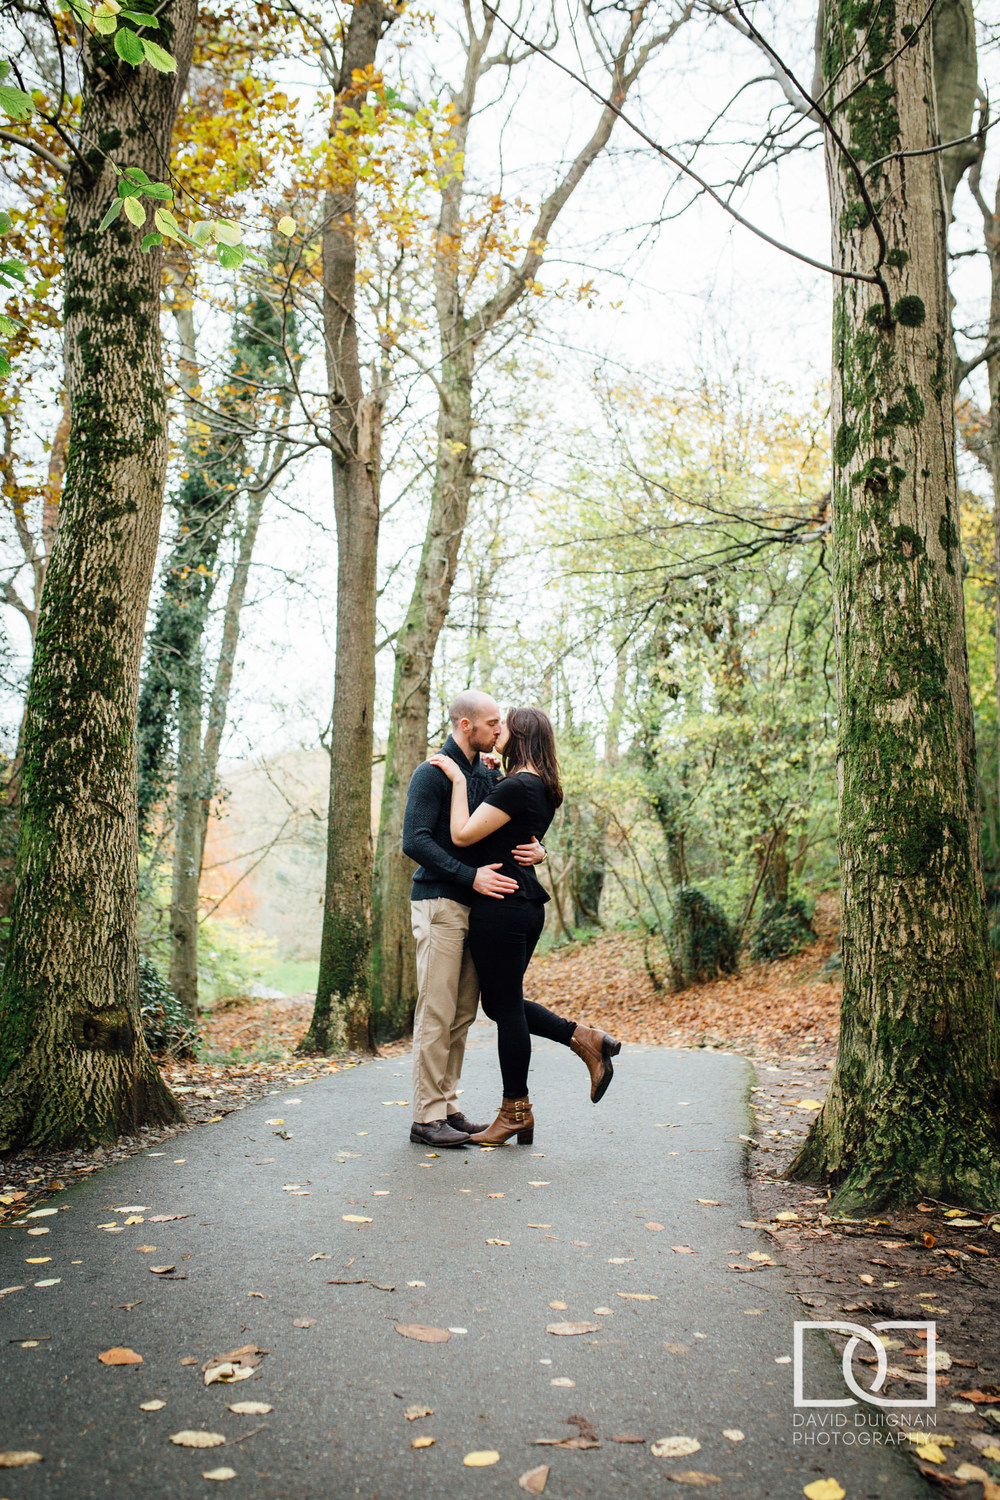 Engagement Love Shoot Killiney Hill Dublin - Pre-Wedding Photographs - David Duignan Photography